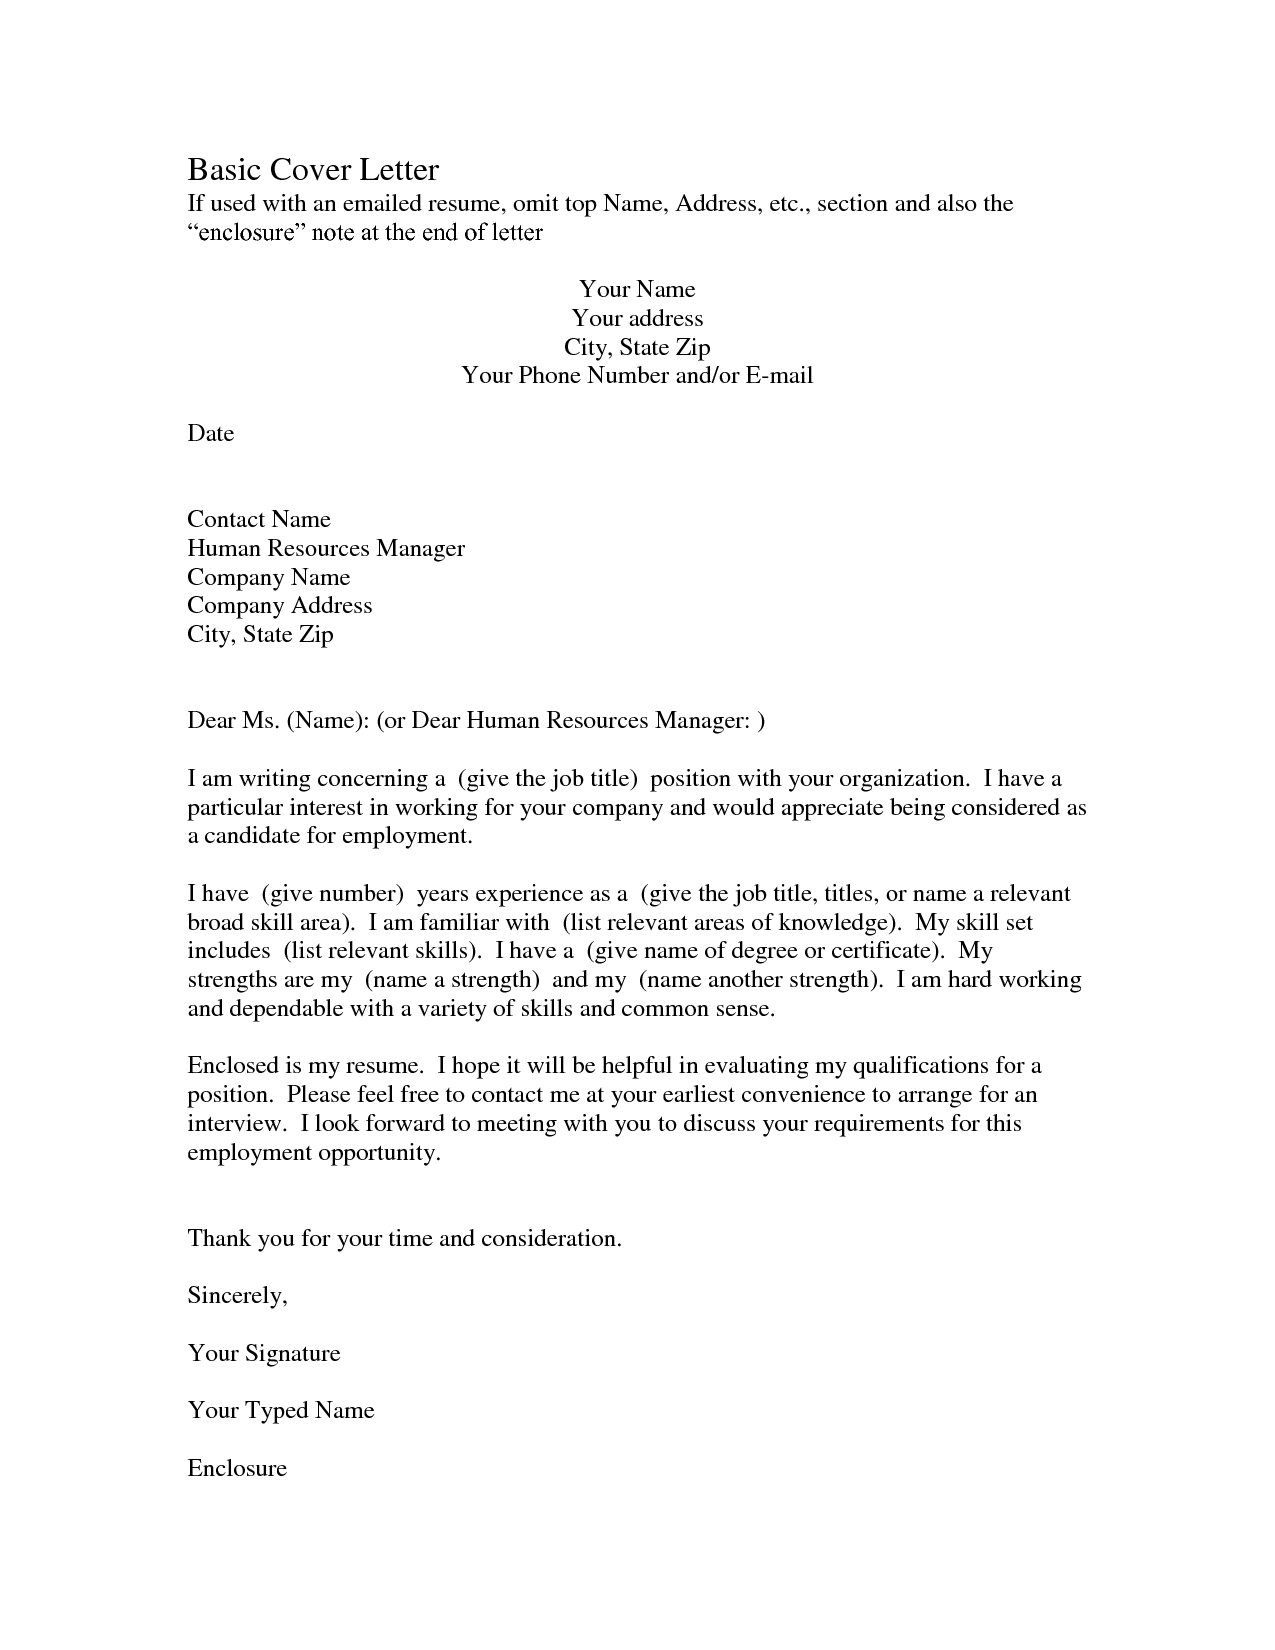 Cover letter format cover letters dear sir nankai madrichimfo Images